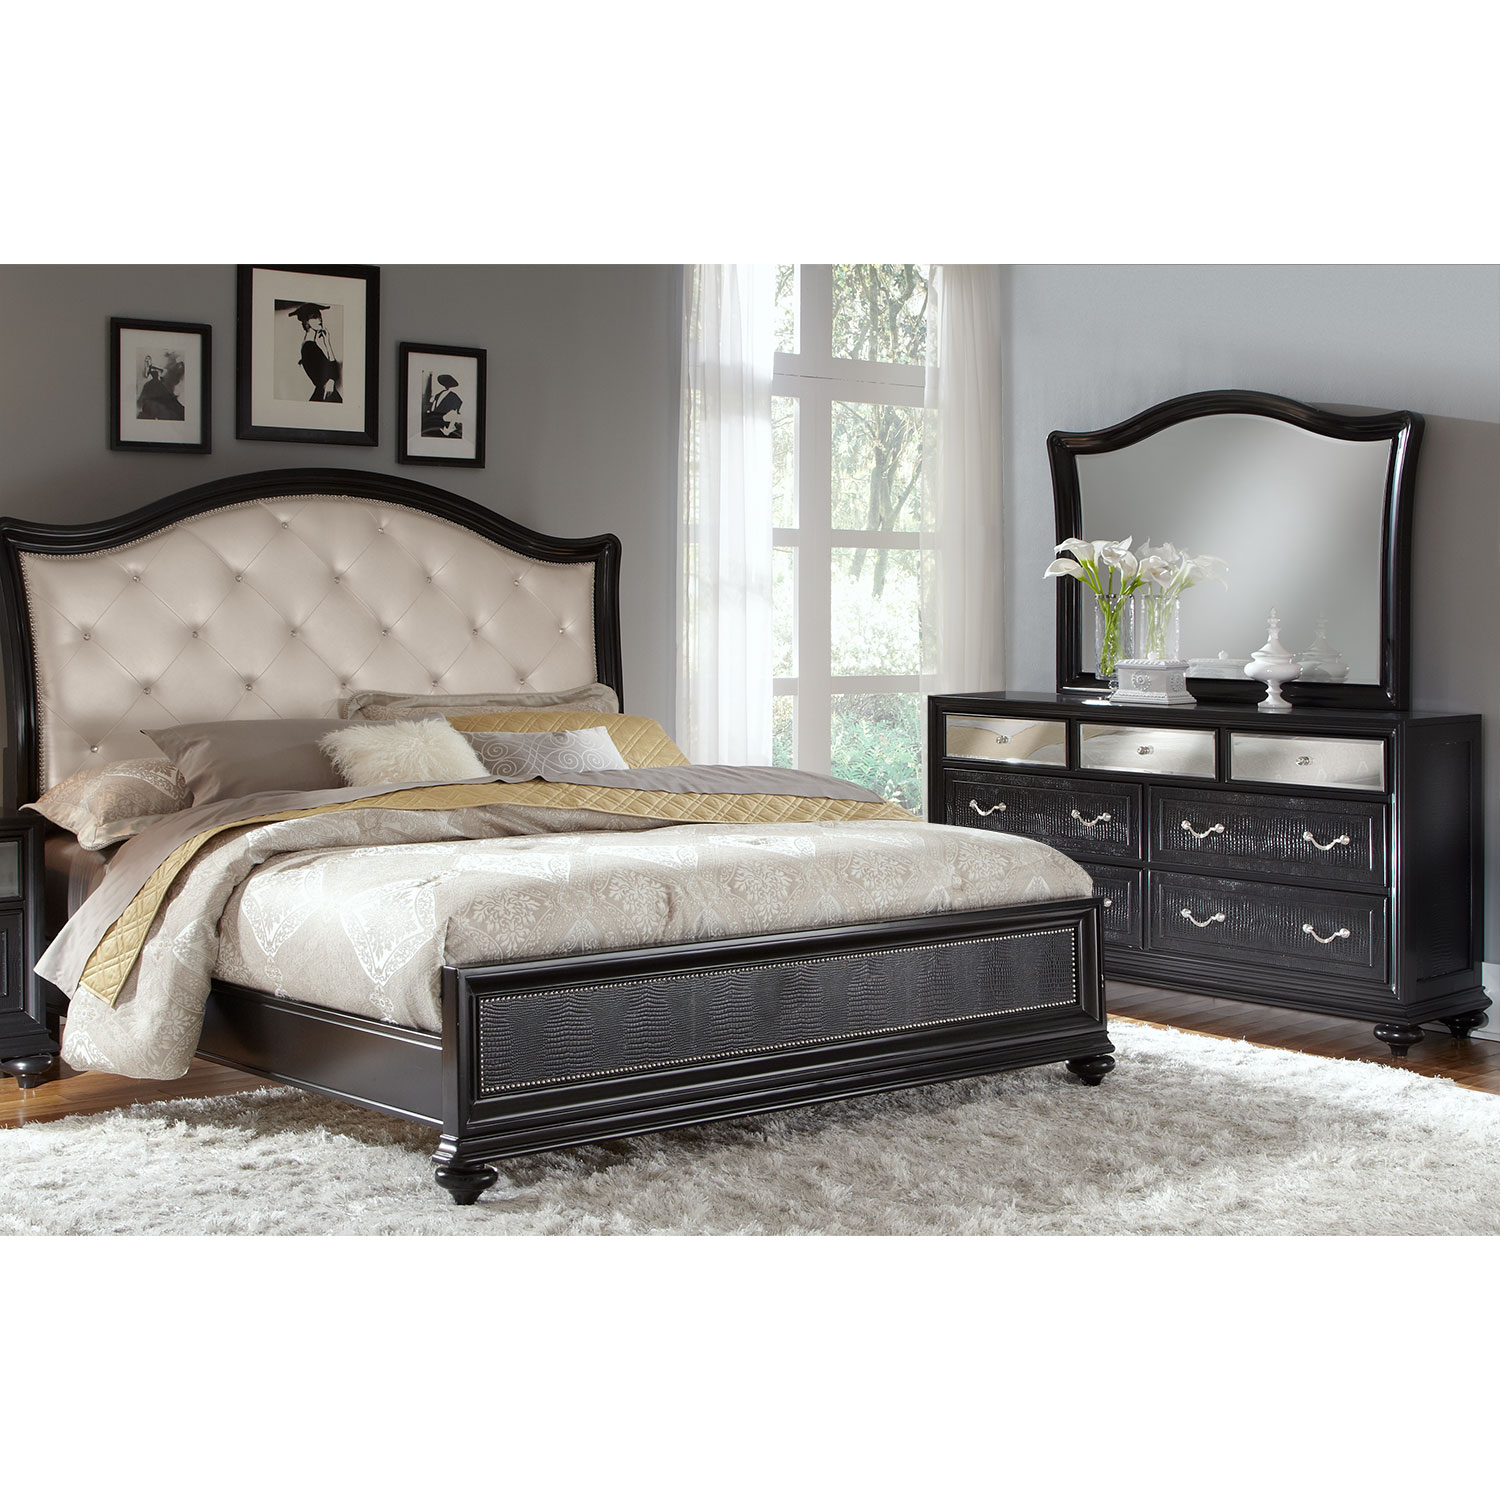 pictures of bedroom sets. Marilyn 5 Piece Queen Bedroom Set  Ebony Sets on Sale Value City Furniture and Mattresses